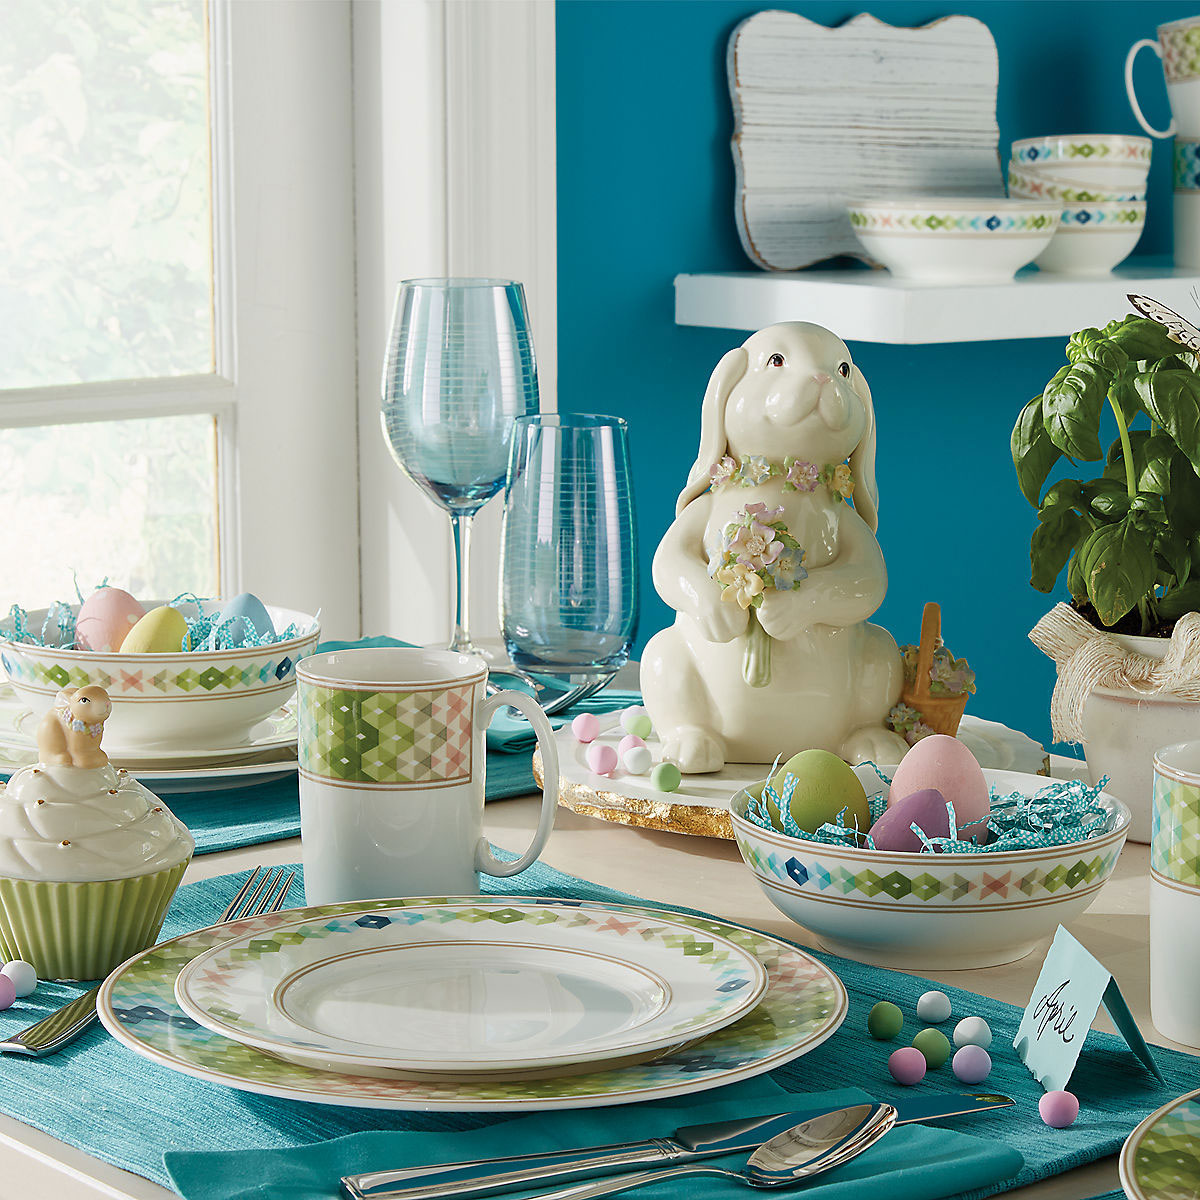 Lenox China Entertain 365 Sculpture Green and Blue 4 Piece Place Setting